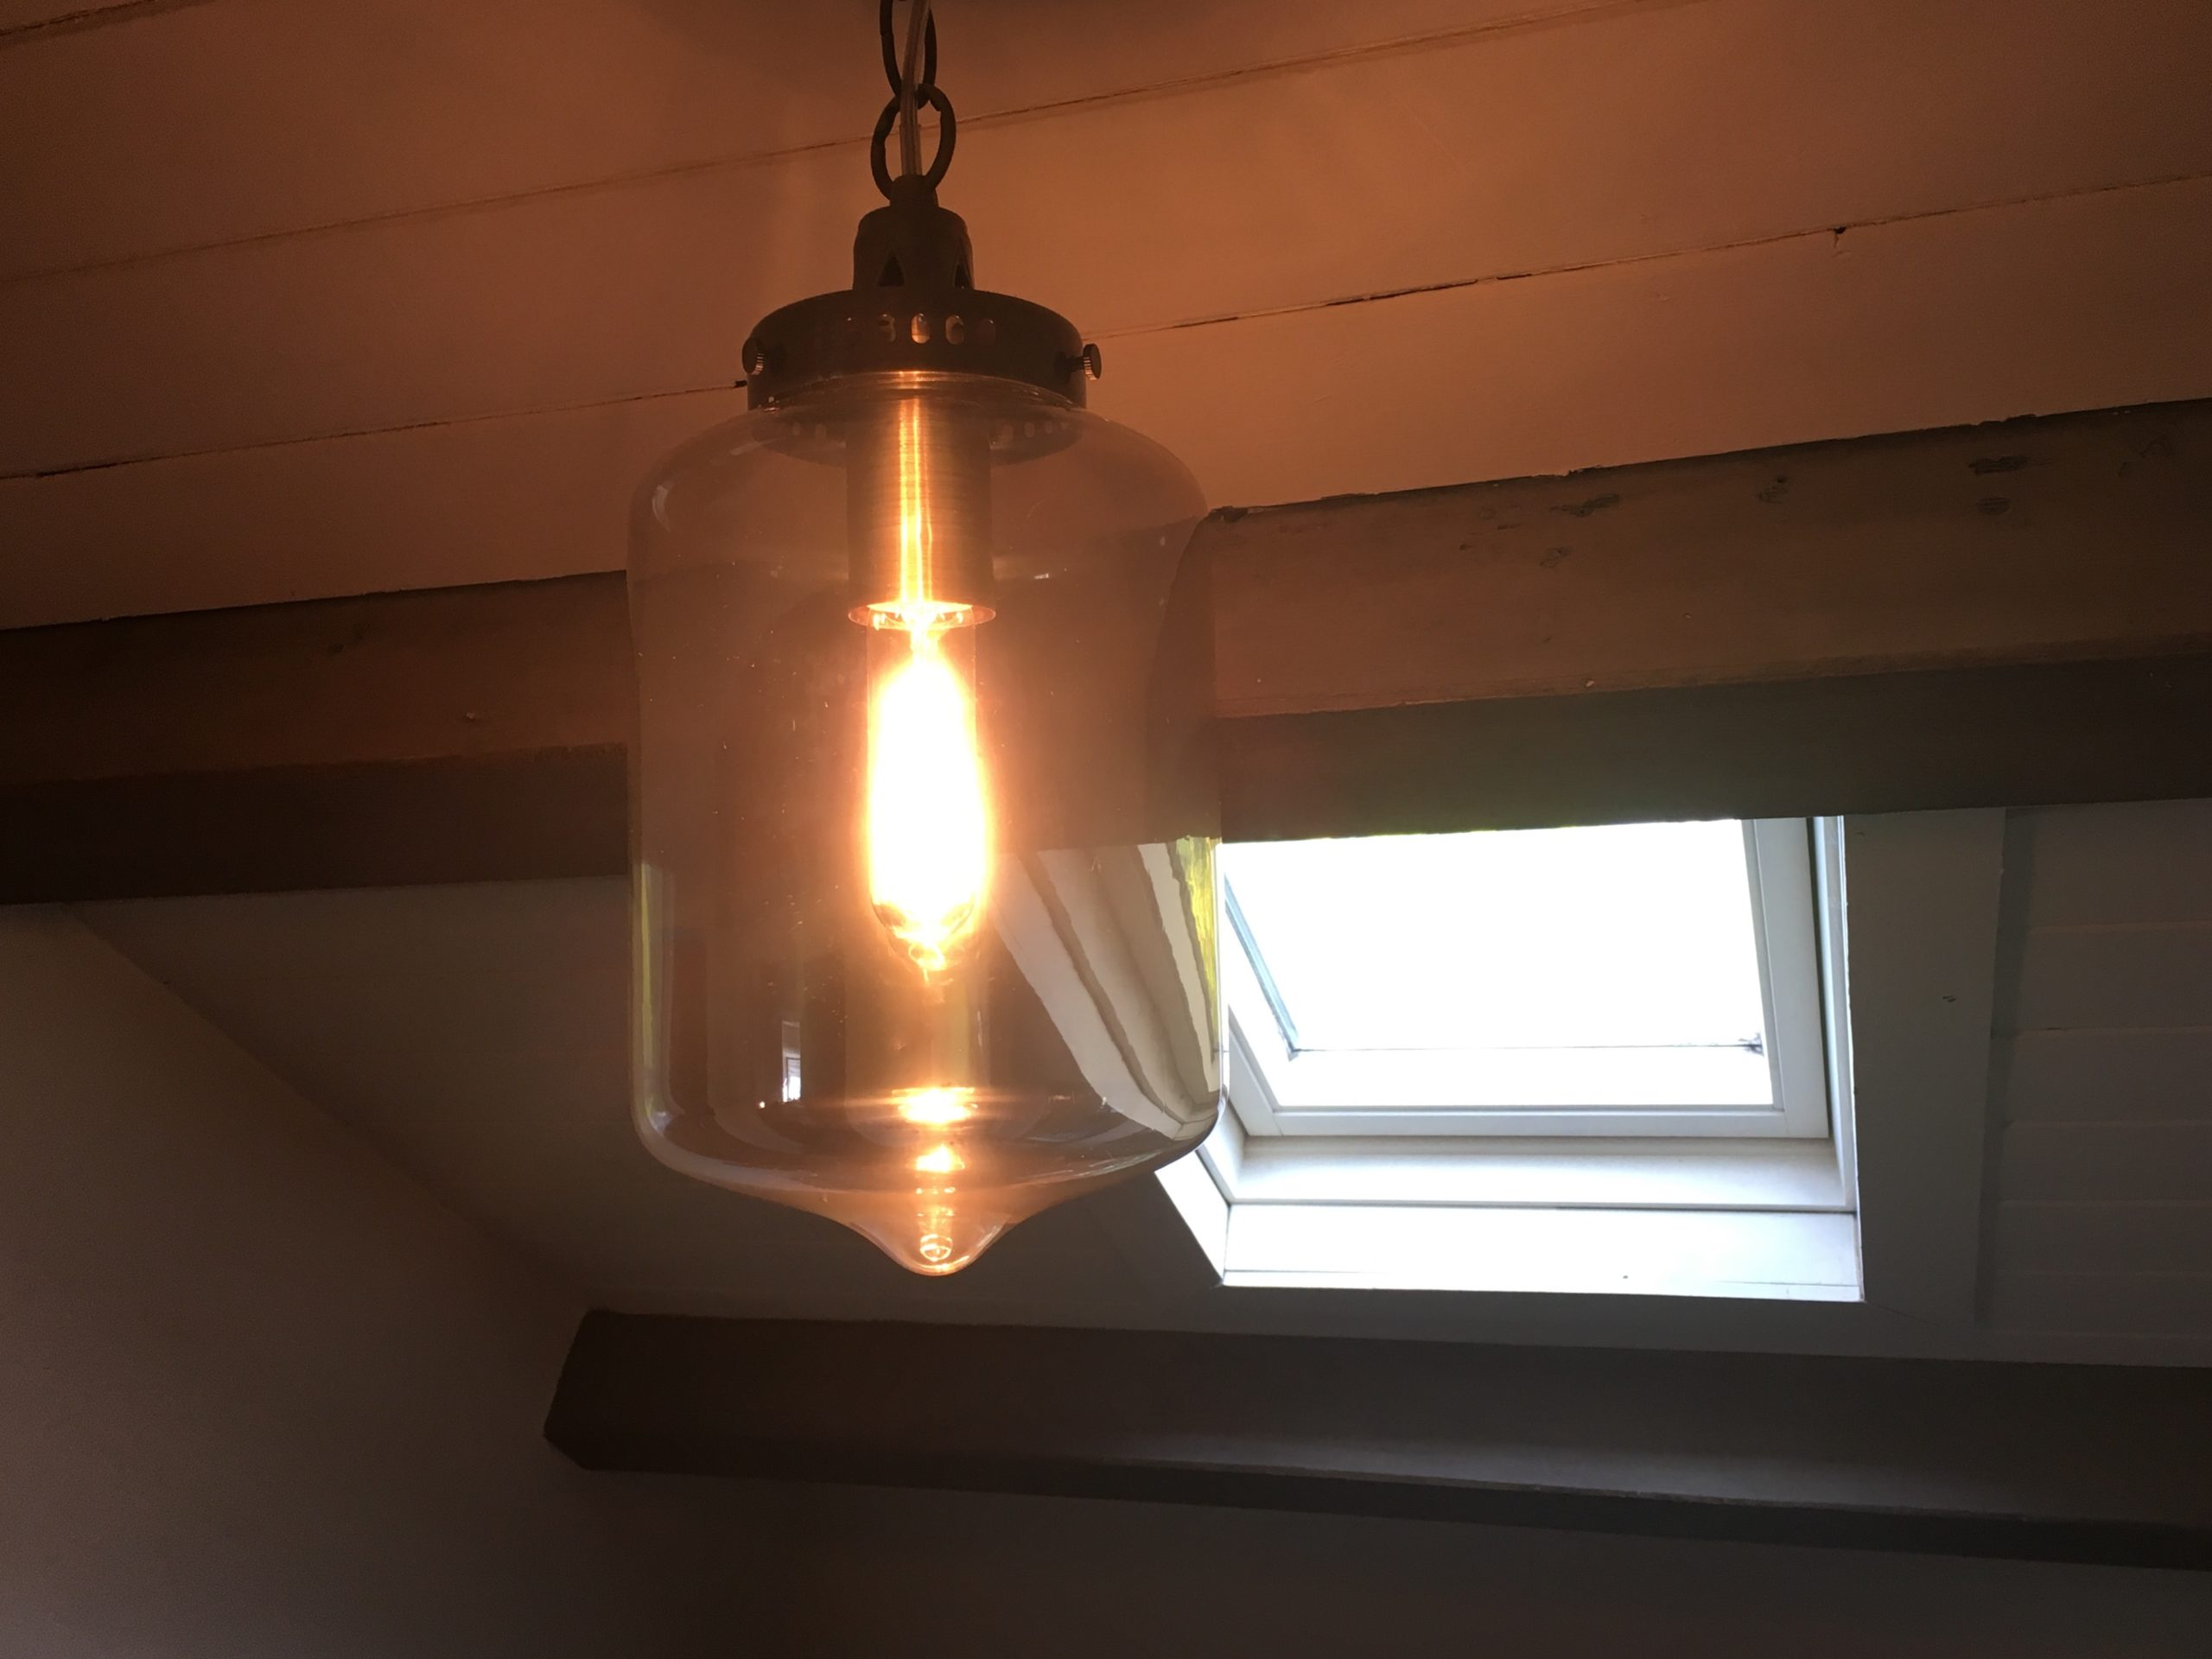 John Lewis amber glass pendant light with filament lightbulb